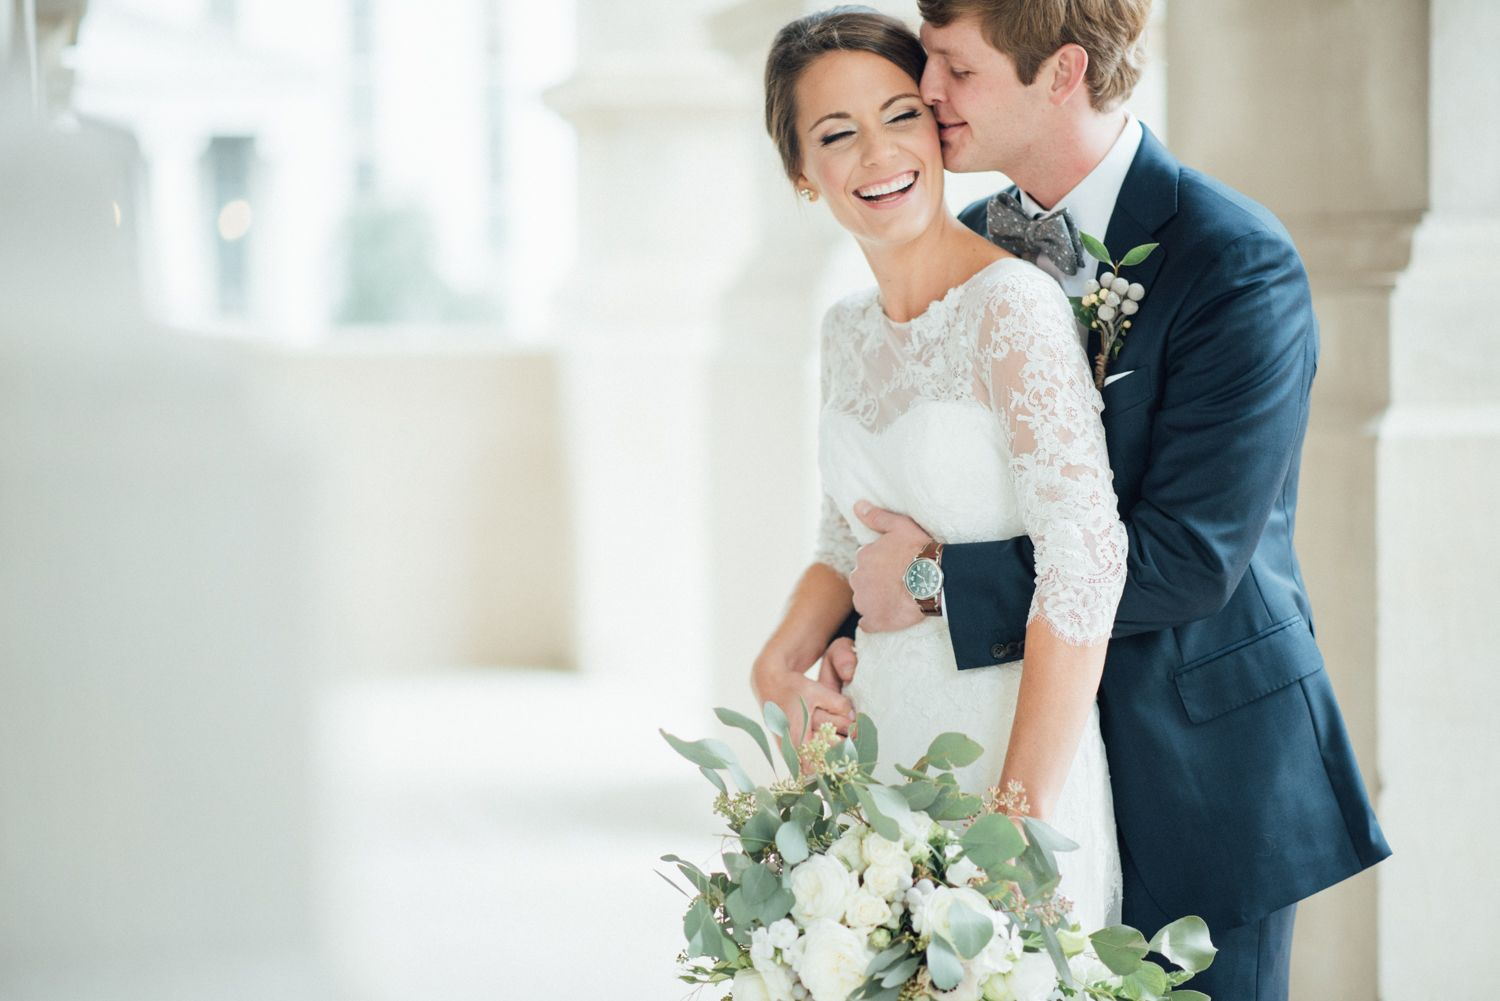 Real Wedding Inspiration: Sam & Jeremy's Winter Wedding | Gown: Lea-Ann Belter Livinia via Kelly's Closet | Image: Eva Lin Photography